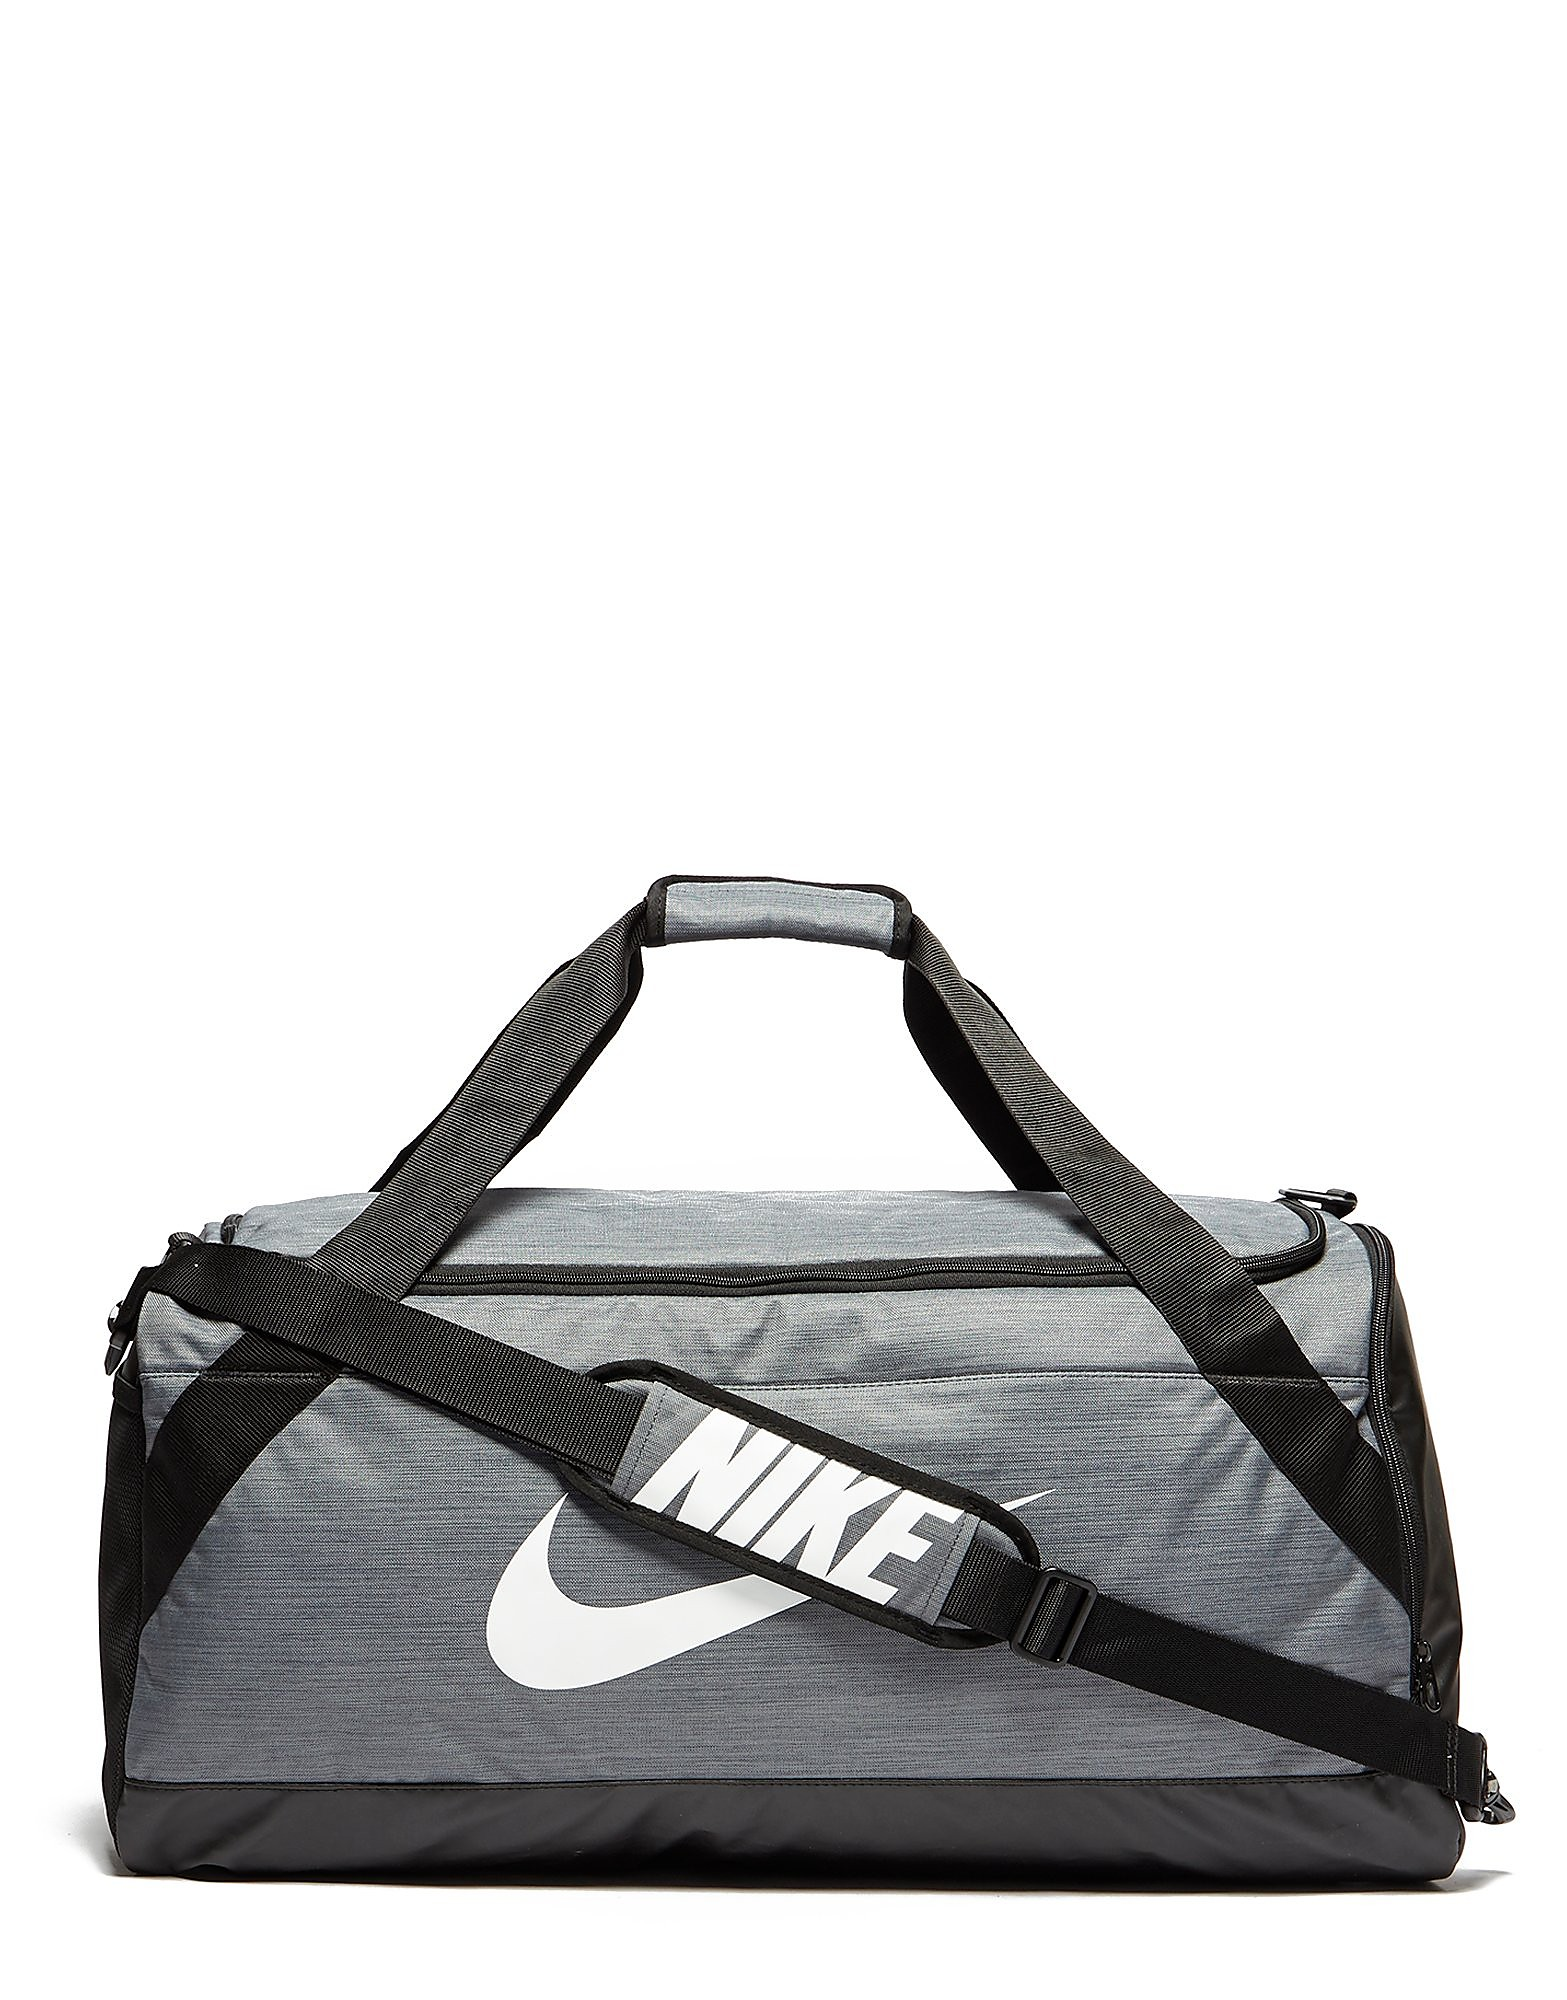 Nike Large Brasilia Bag